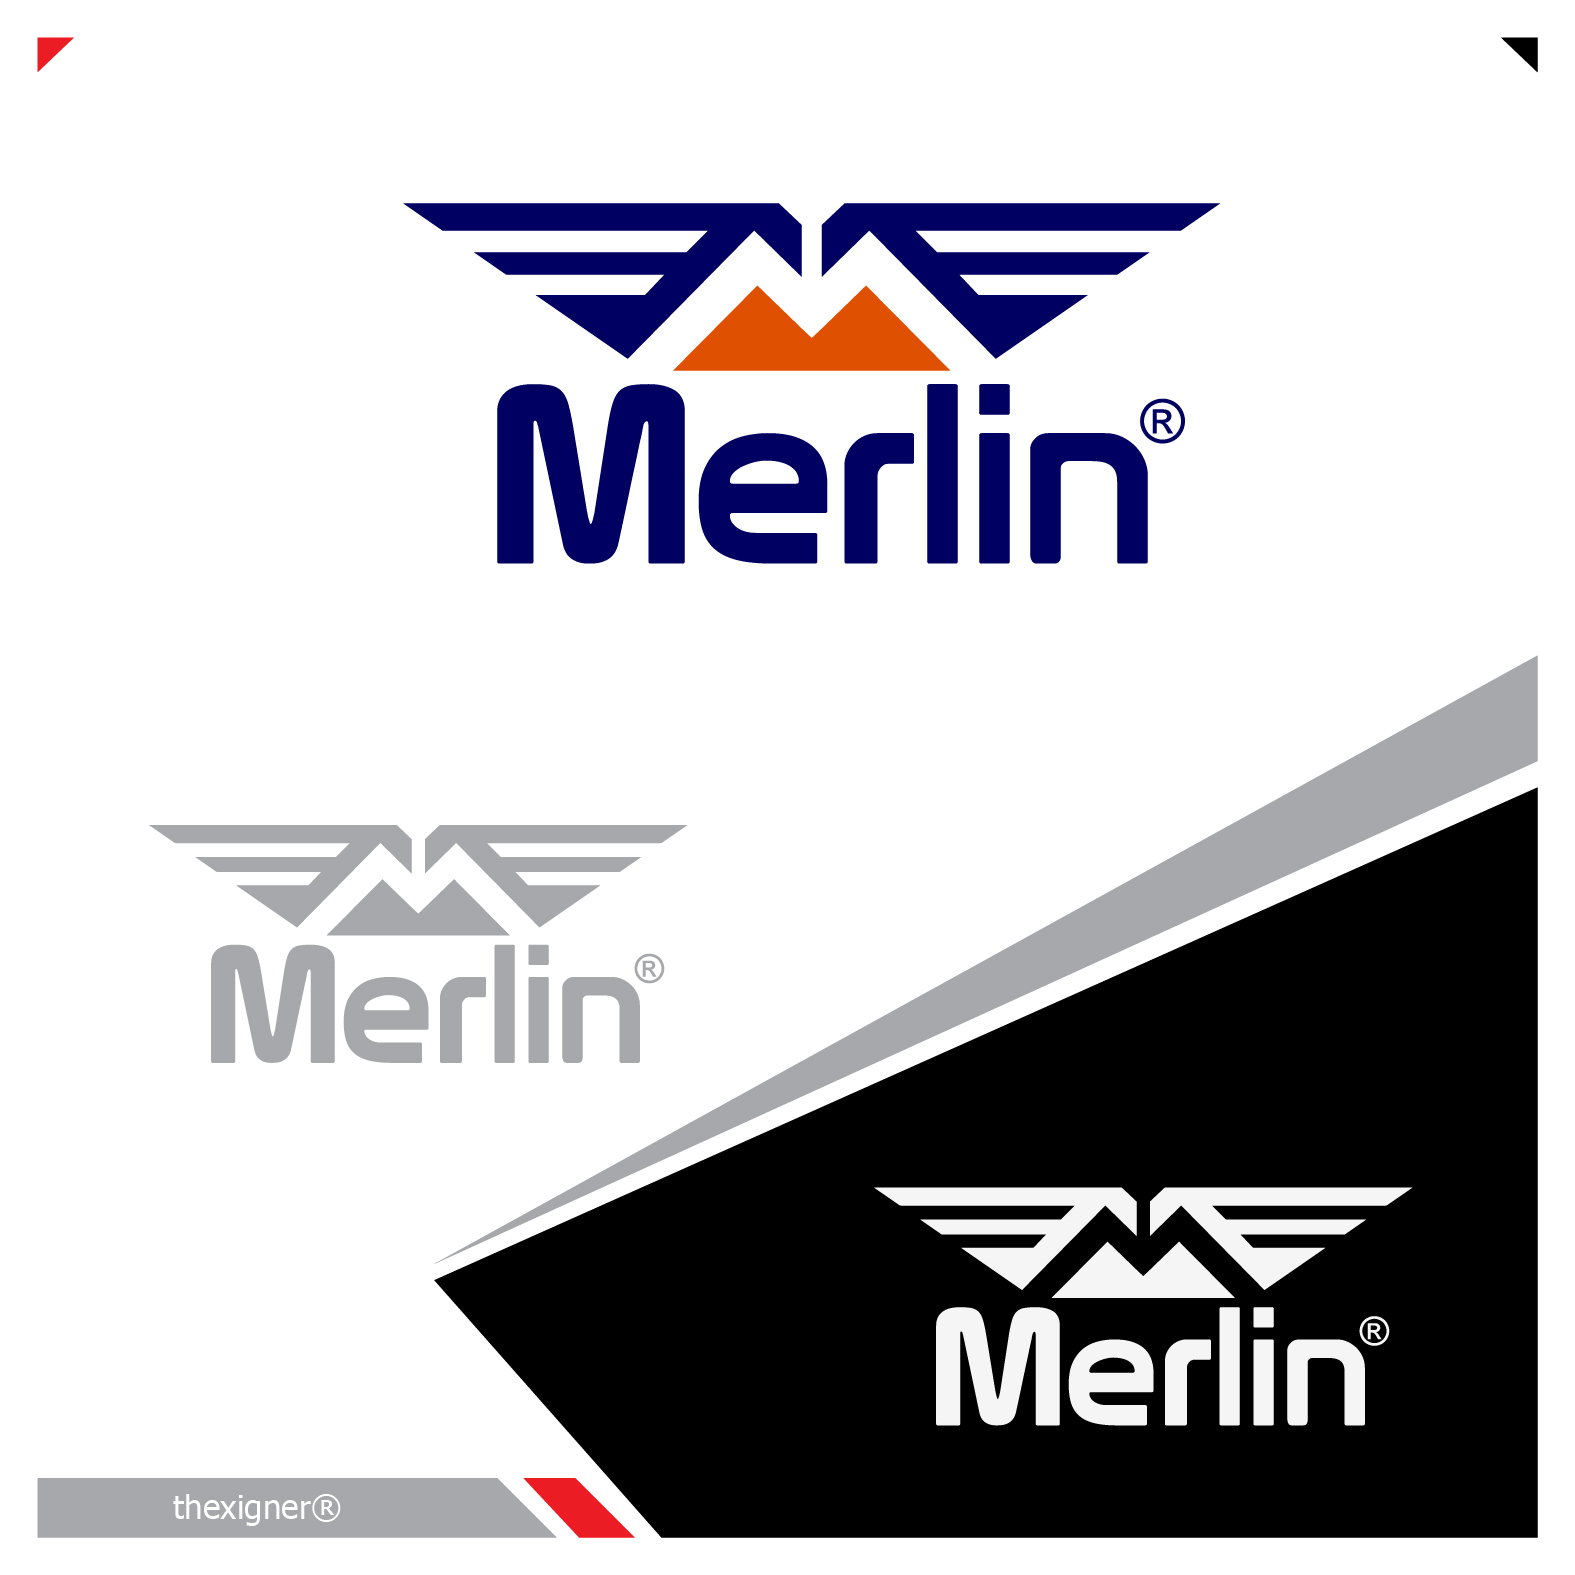 Logo Design by lagalag - Entry No. 22 in the Logo Design Contest Imaginative Logo Design for Merlin.